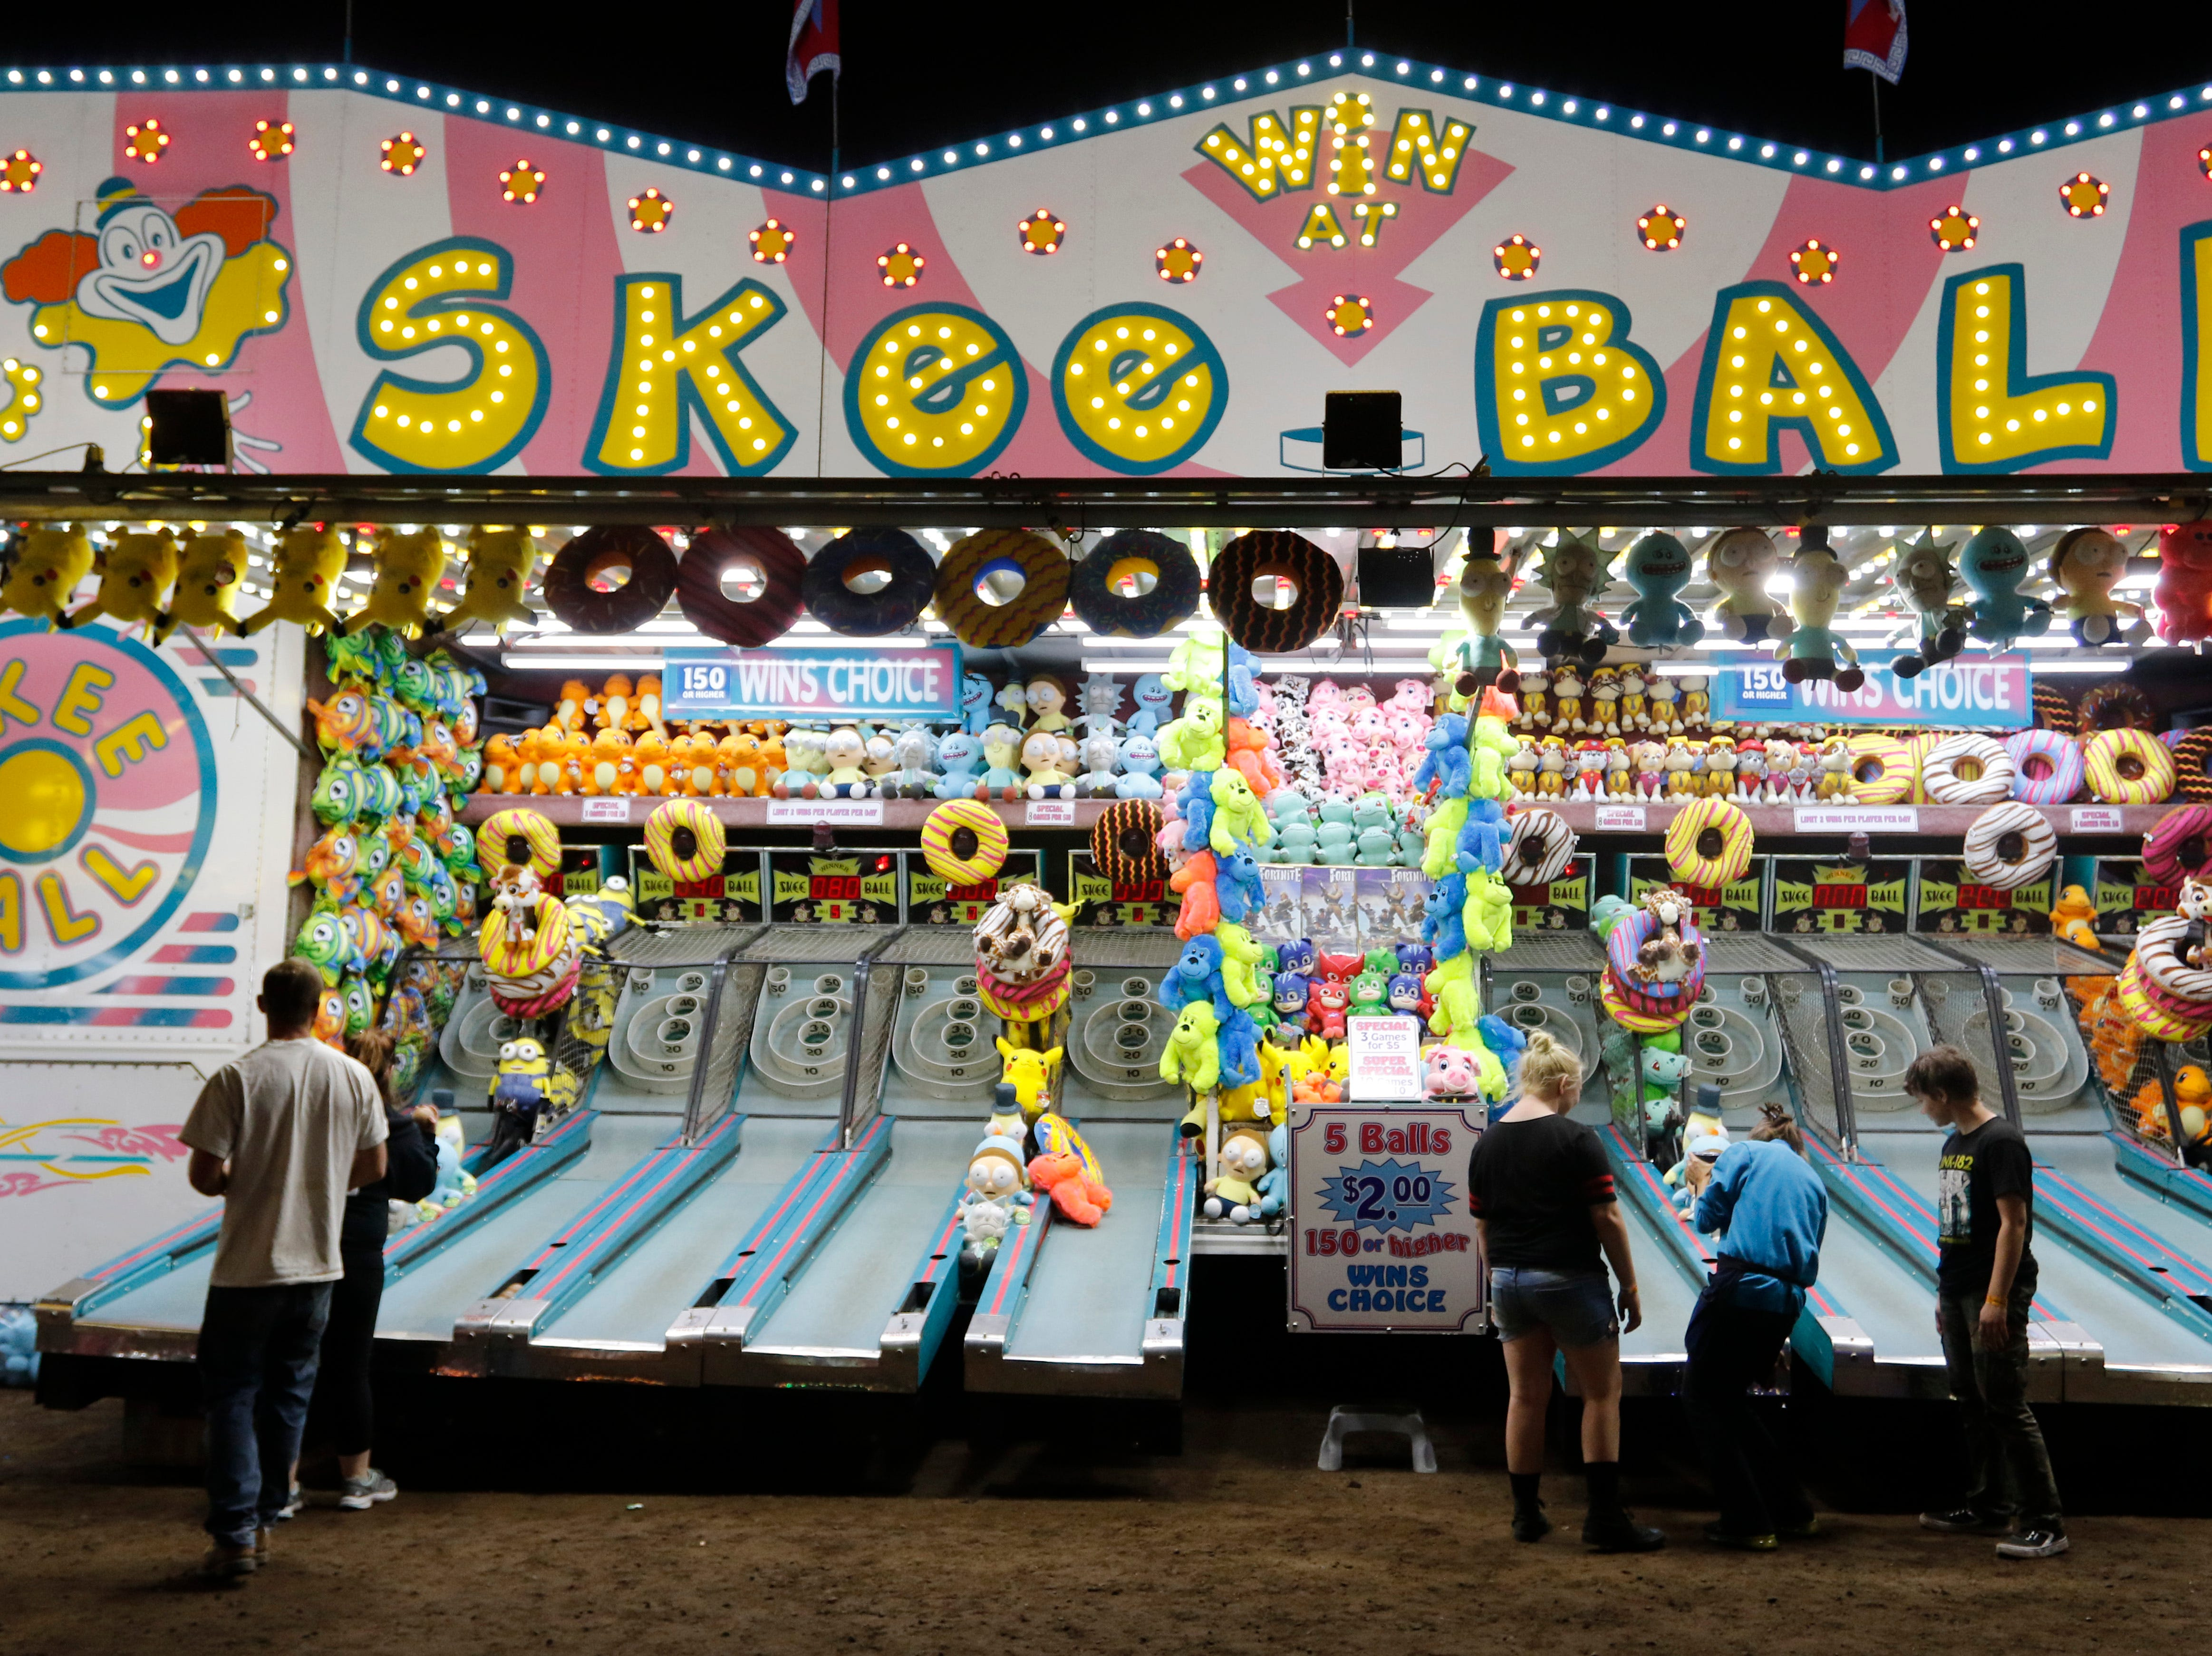 Fairgoers take a shot at the skee ball game at the Central Wisconsin State Fair in Marshfield Wednesday, August 22, 2018.